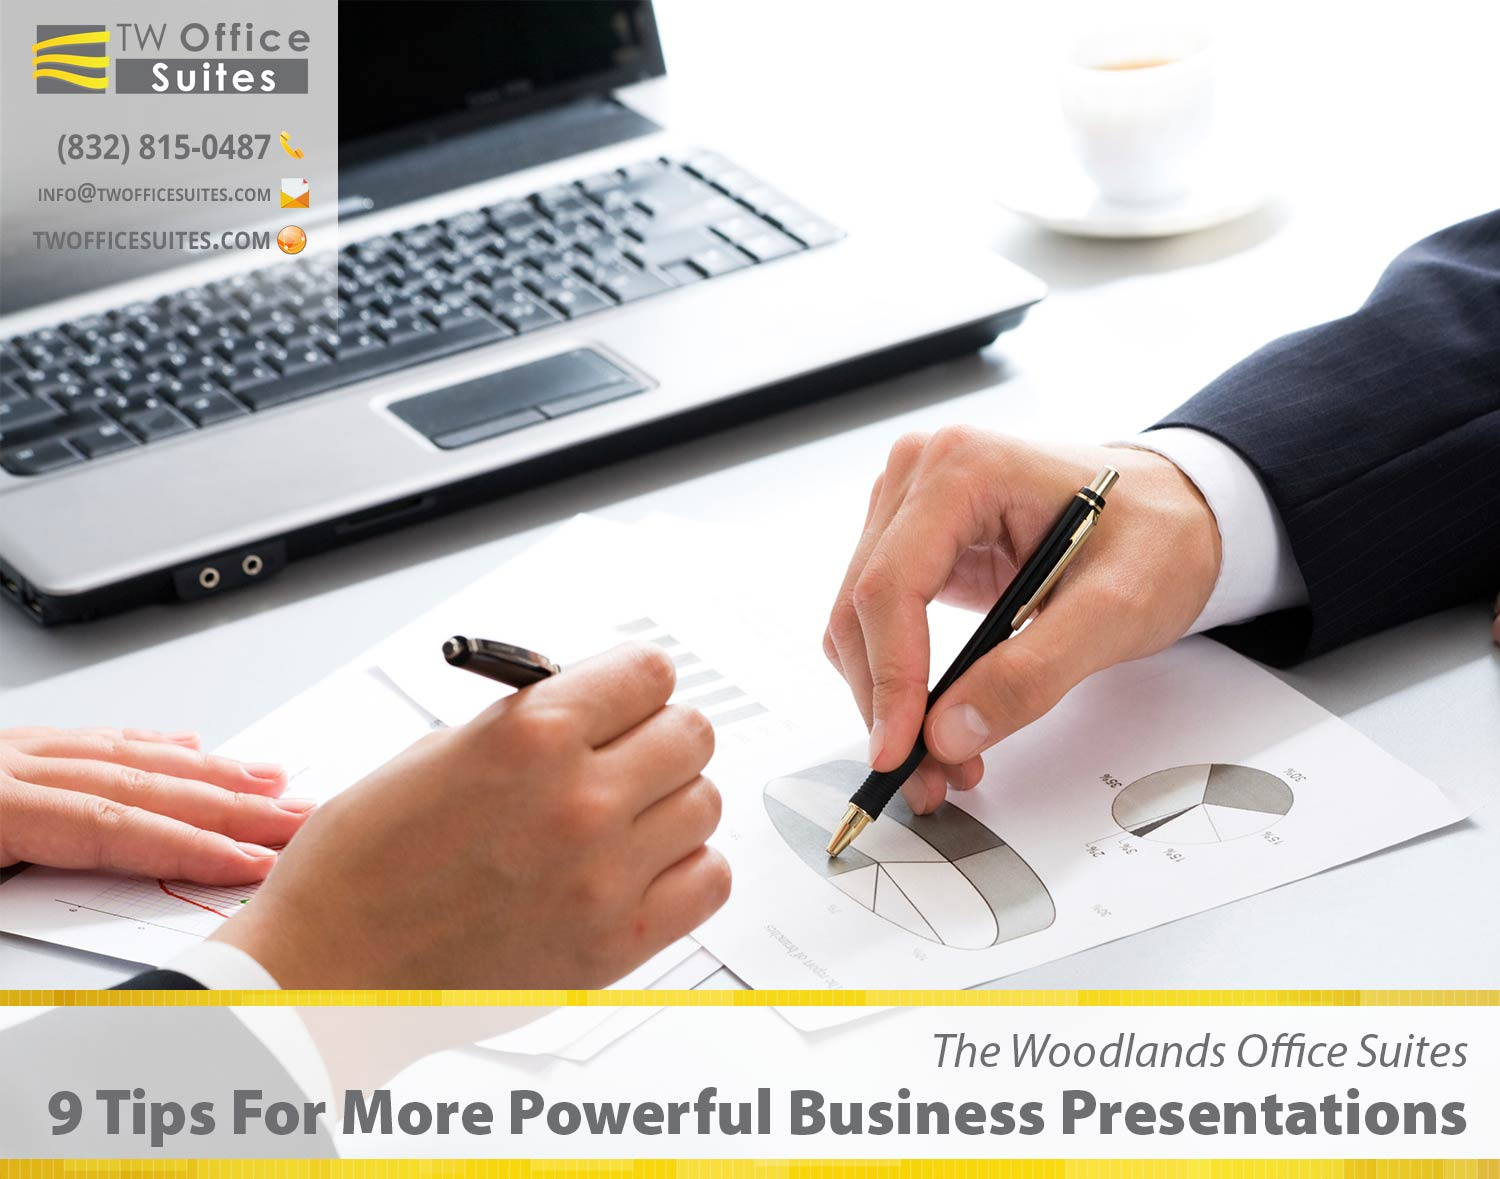 9 tips for more powerful business presentations